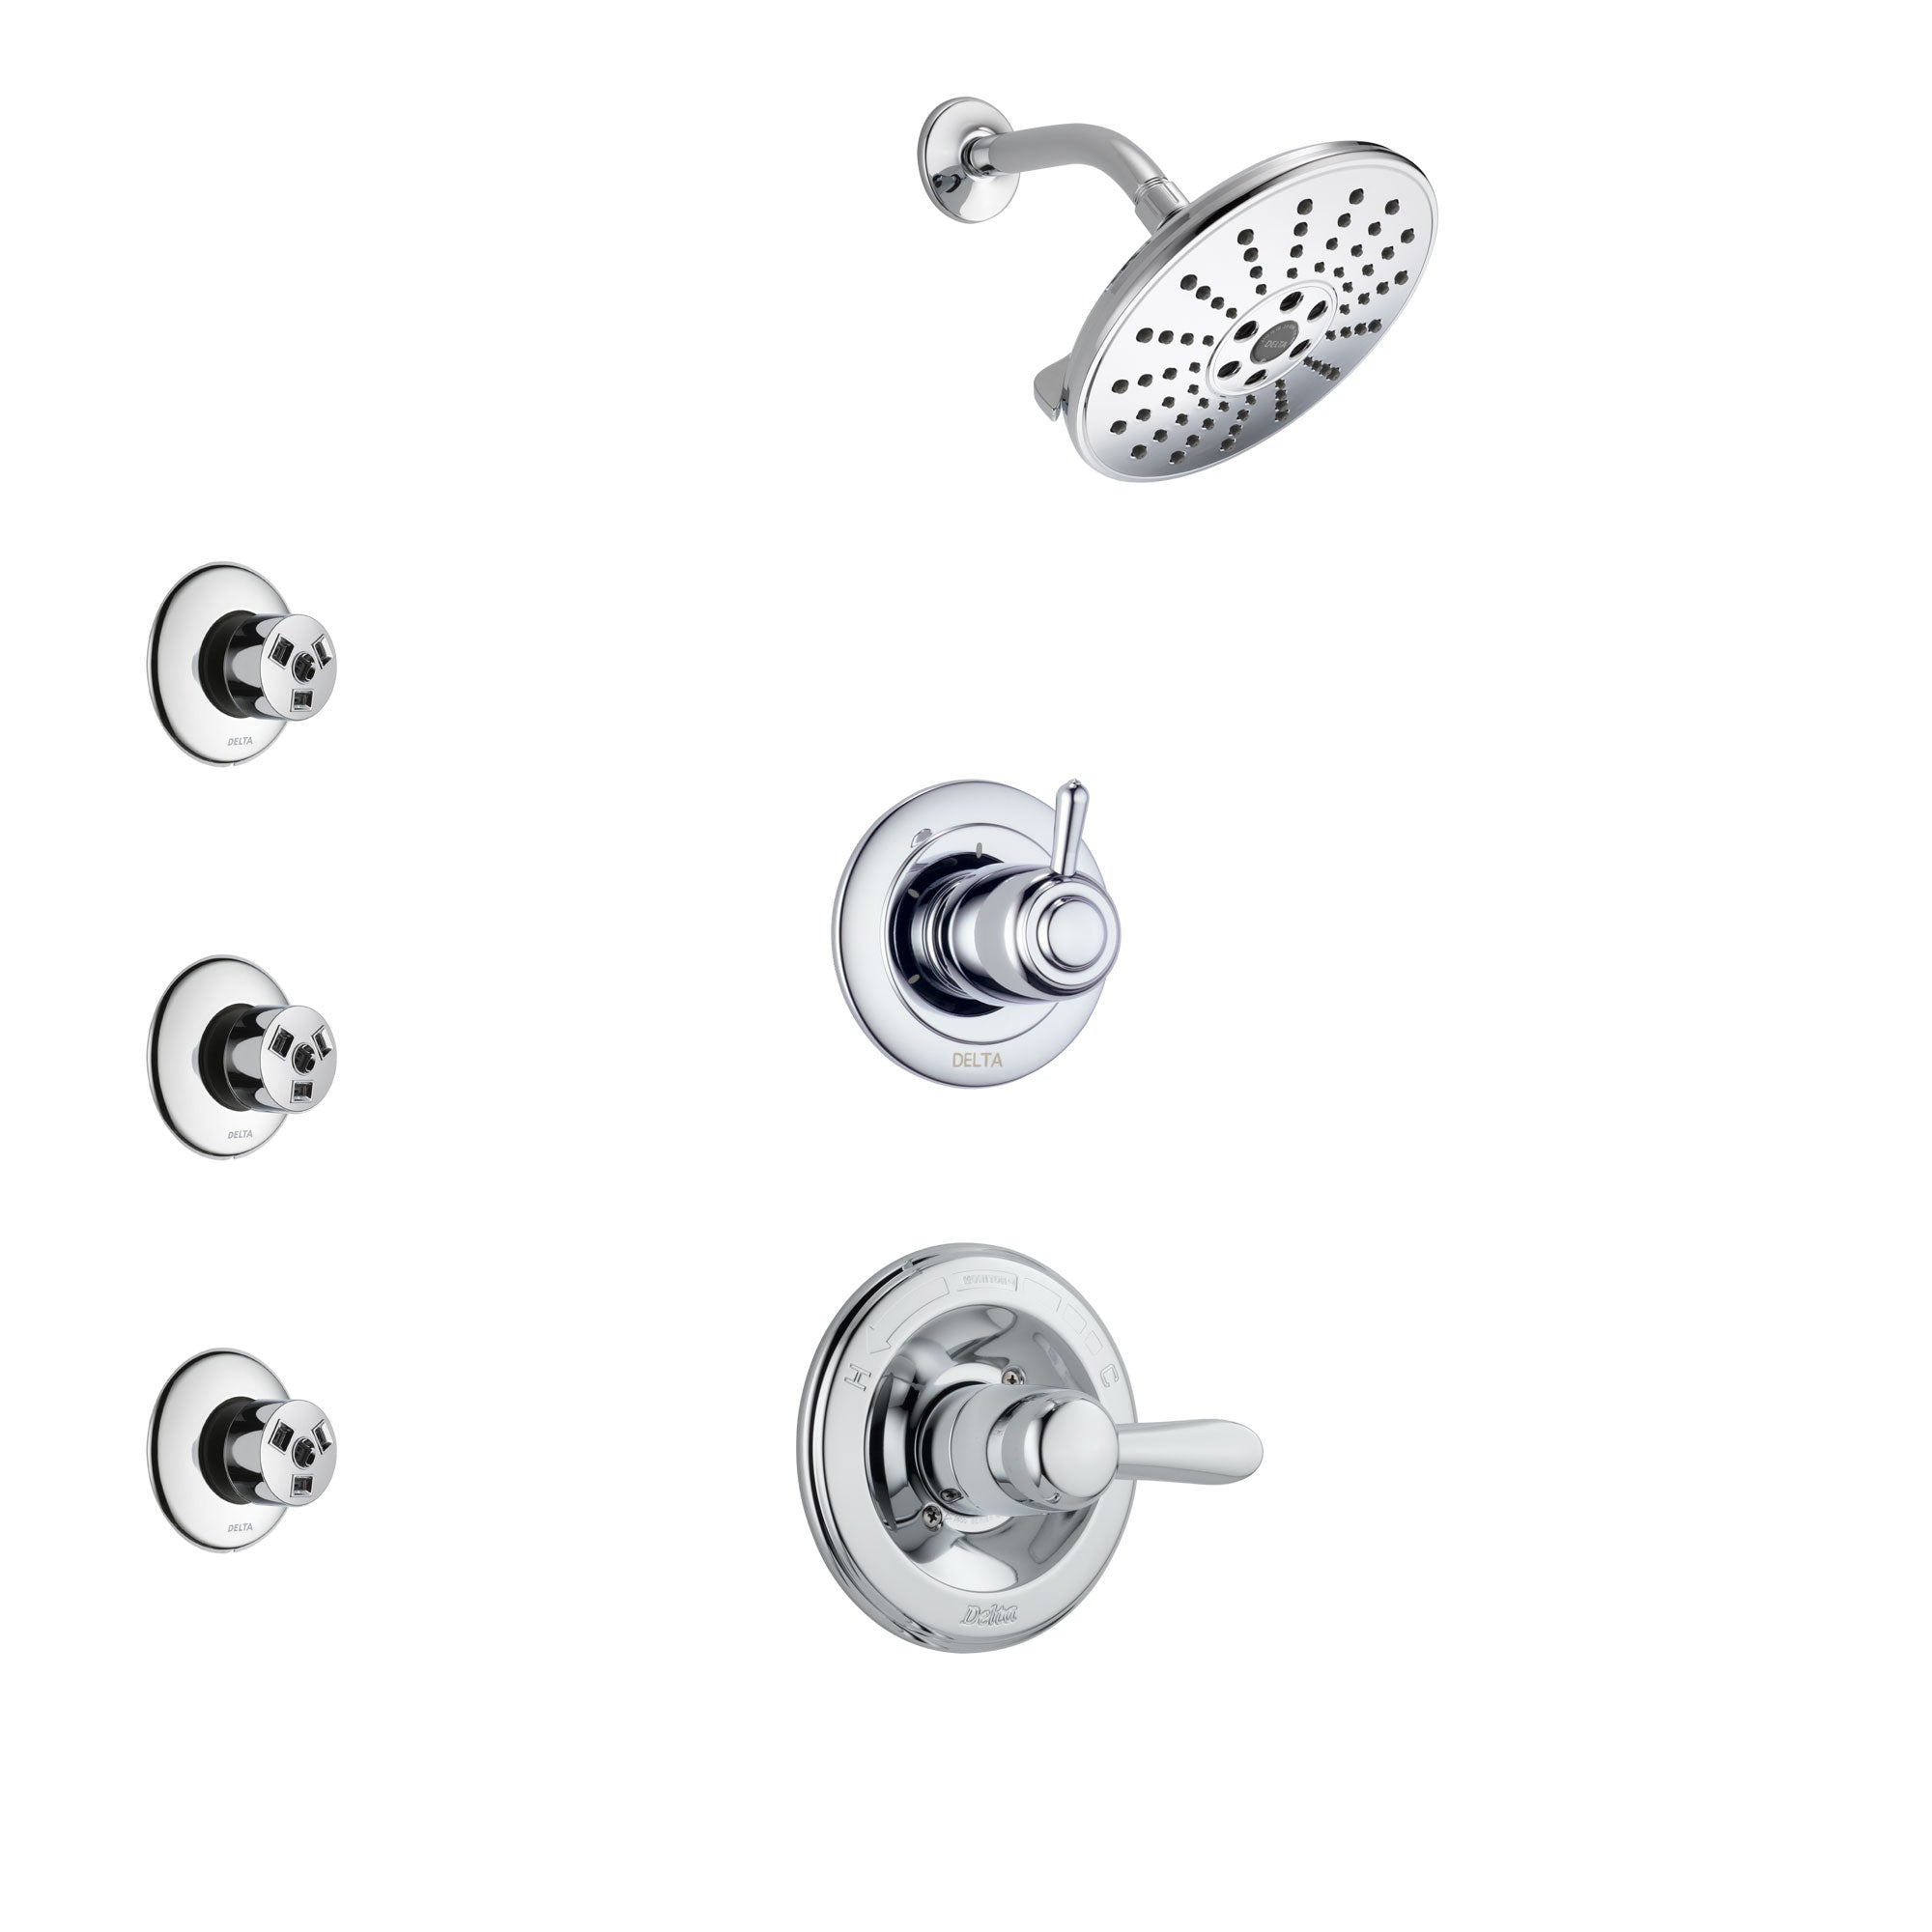 Delta Lahara Chrome Finish Shower System with Control Handle, 3-Setting Diverter, Showerhead, and 3 Body Sprays SS14381